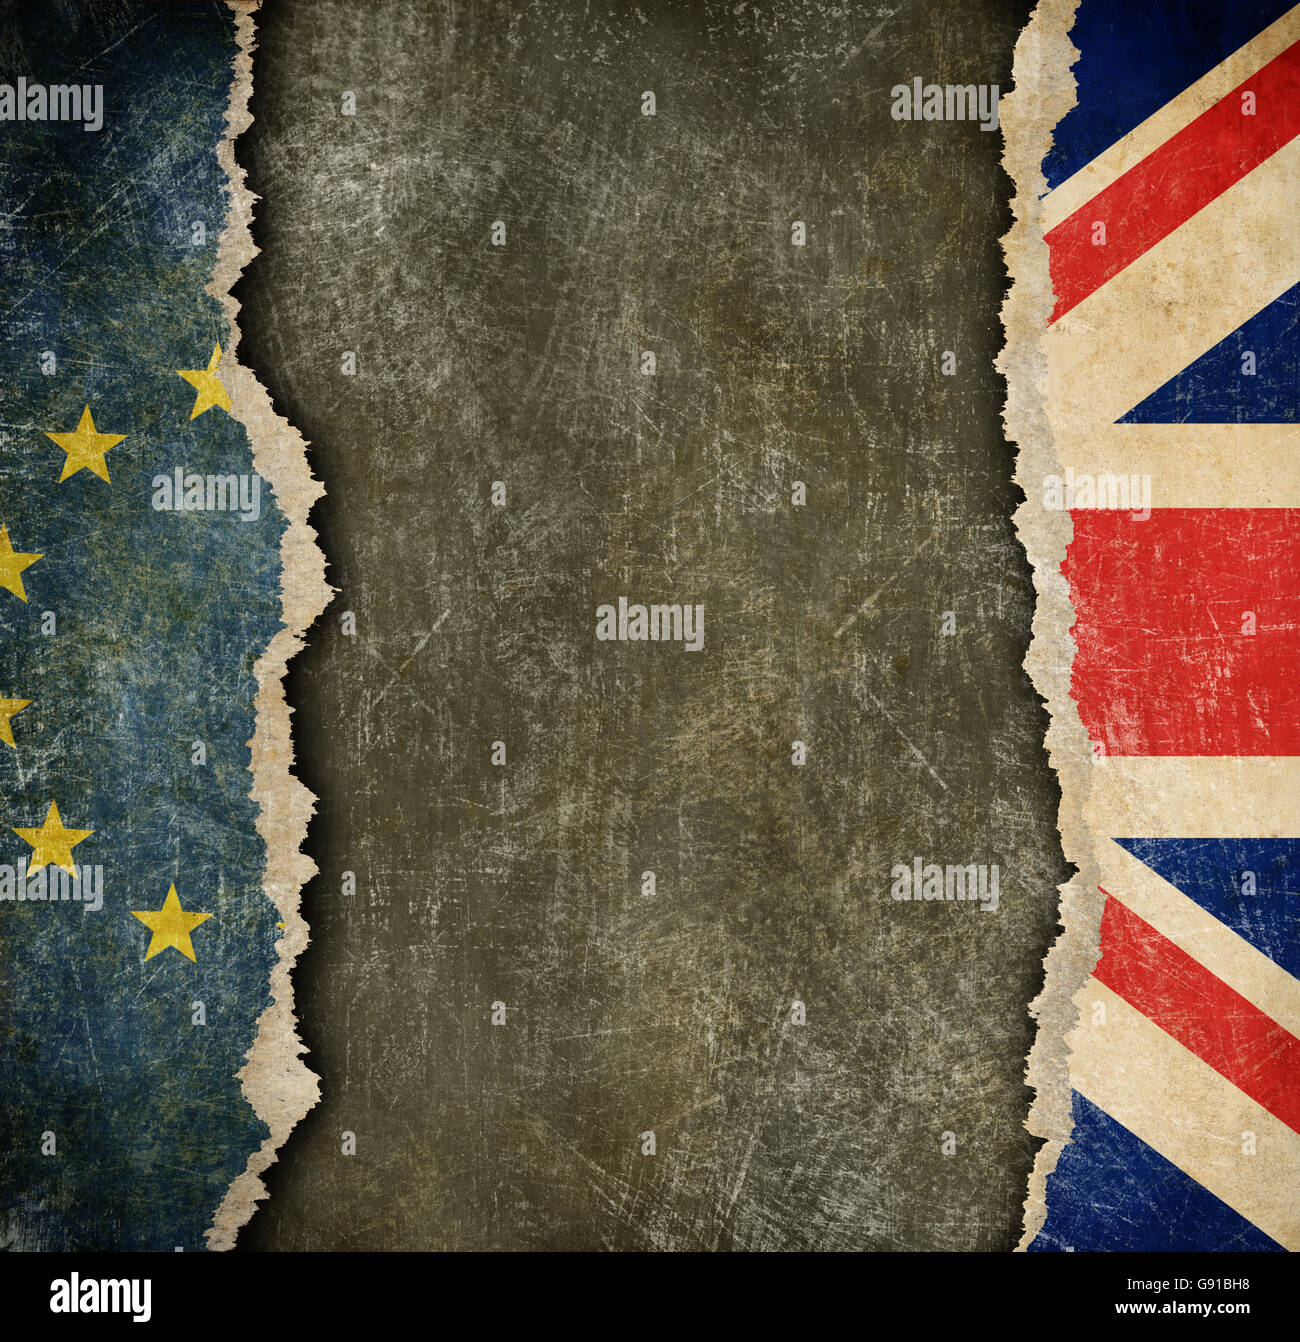 Great Britain withdrawal from European union brexit concept - Stock Image